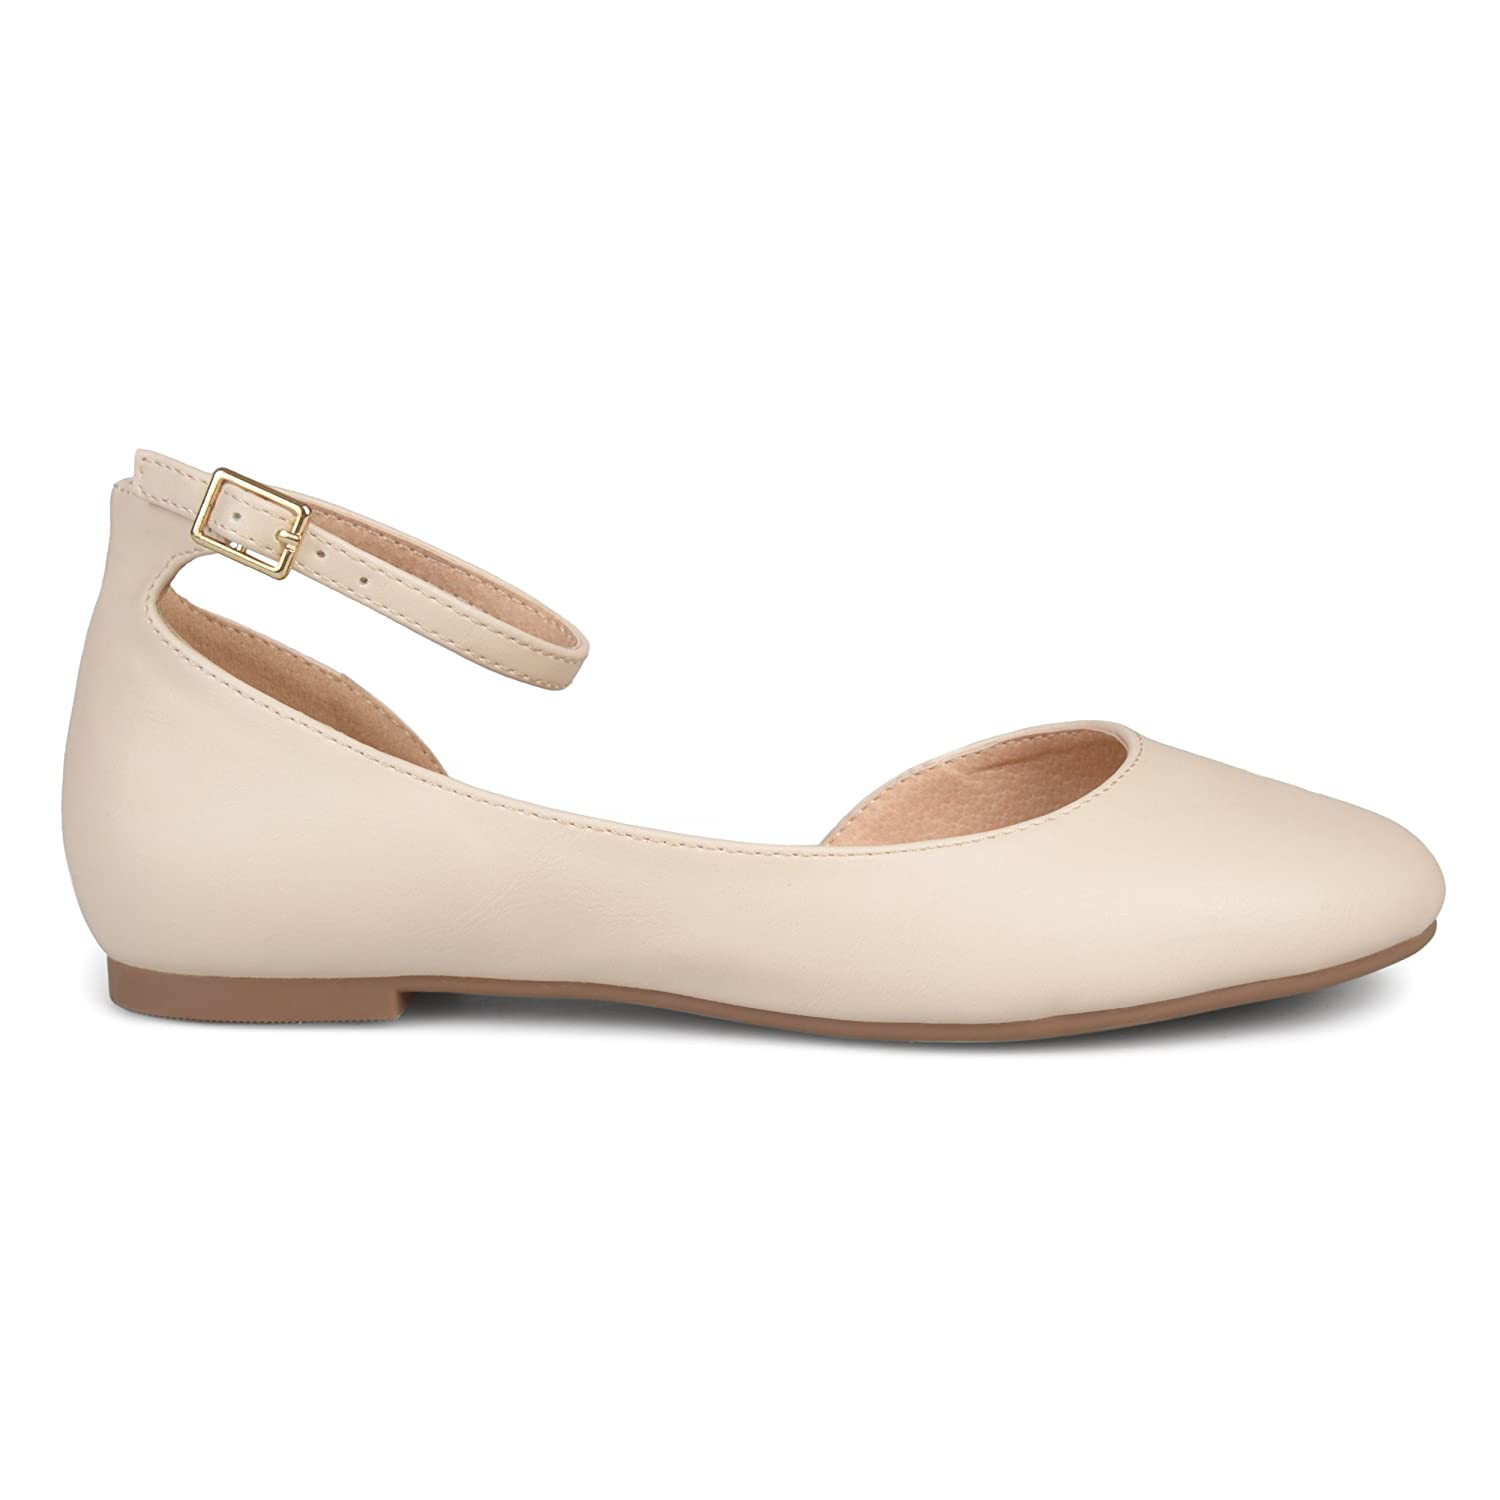 Brinley Co Womens ARO Faux Leather Wide Width Ankle Strap Round Toe D'Orsay Flats B074WFZ1LP 6 B(M) US|Ivory